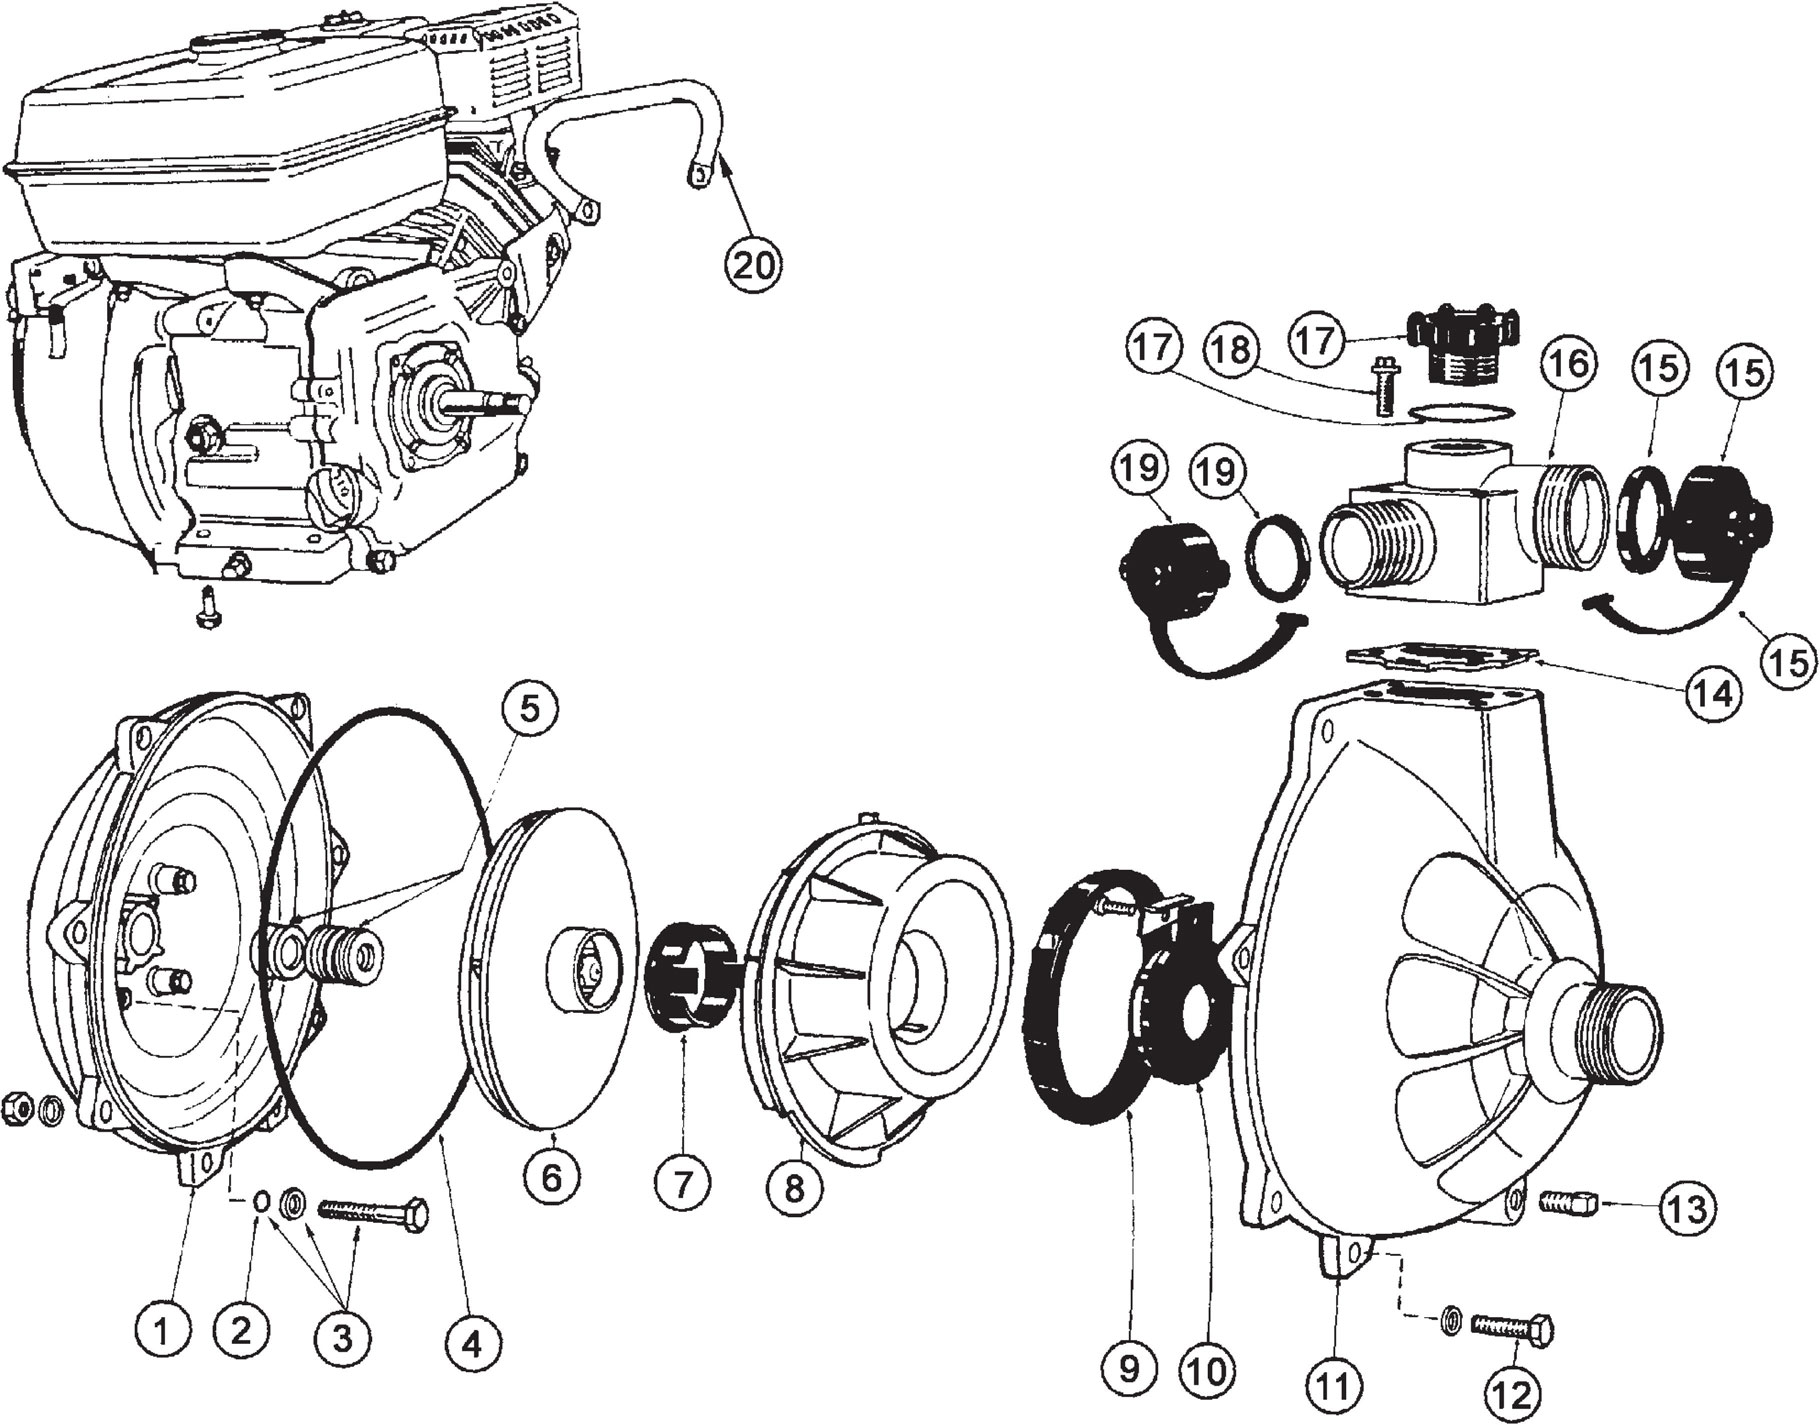 Electric Fire Pump Schematic